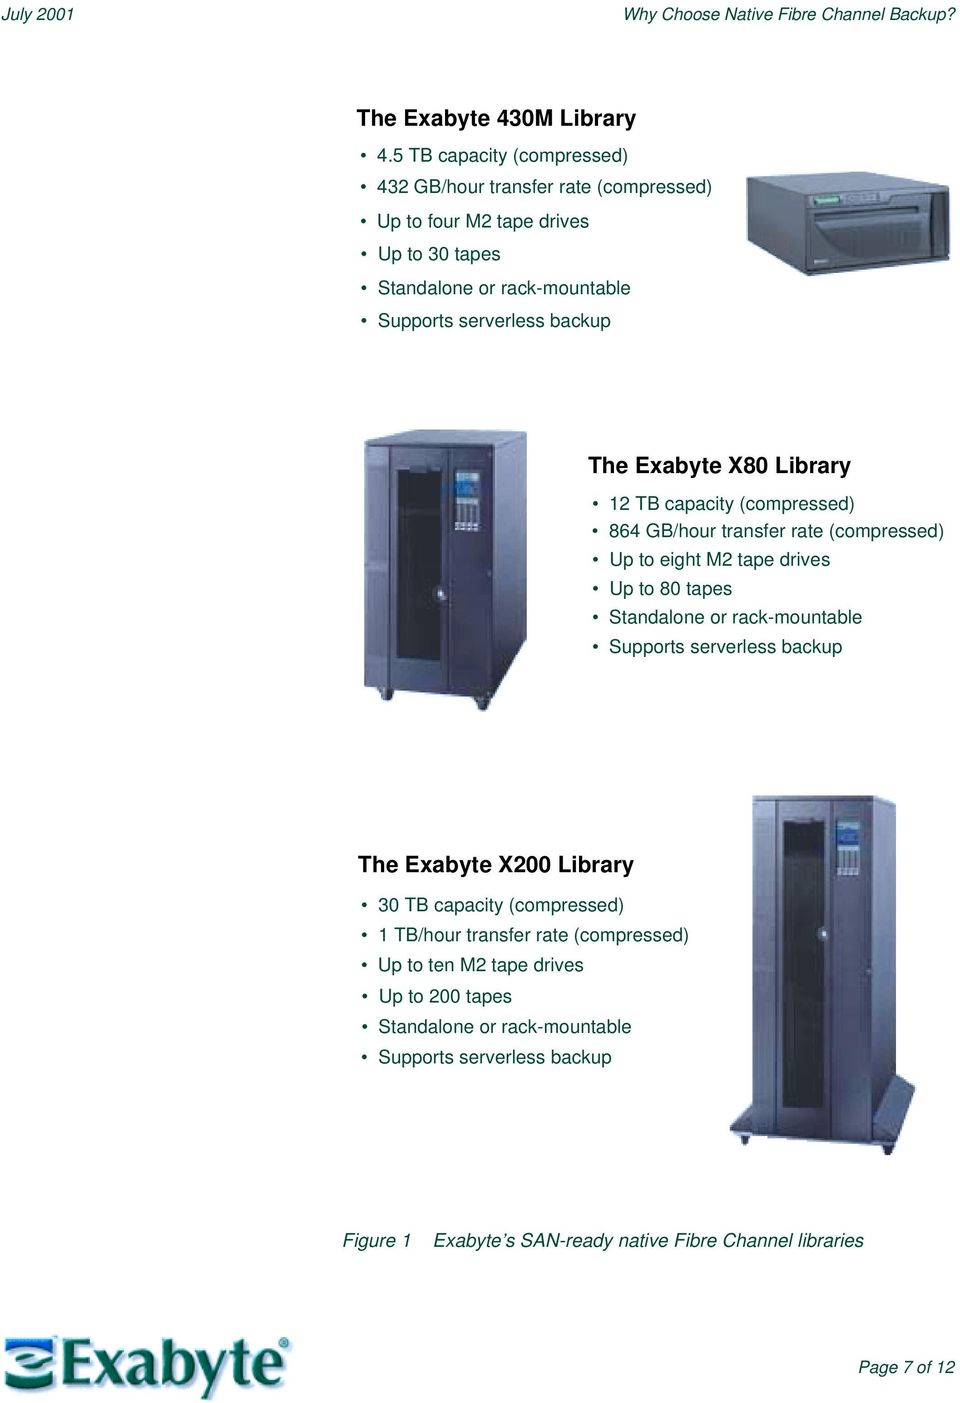 Exabyte X80 Library 12 TB capacity (compressed) 864 GB/hour transfer rate (compressed) Up to eight M2 tape drives Up to 80 tapes Standalone or rack-mountable Supports